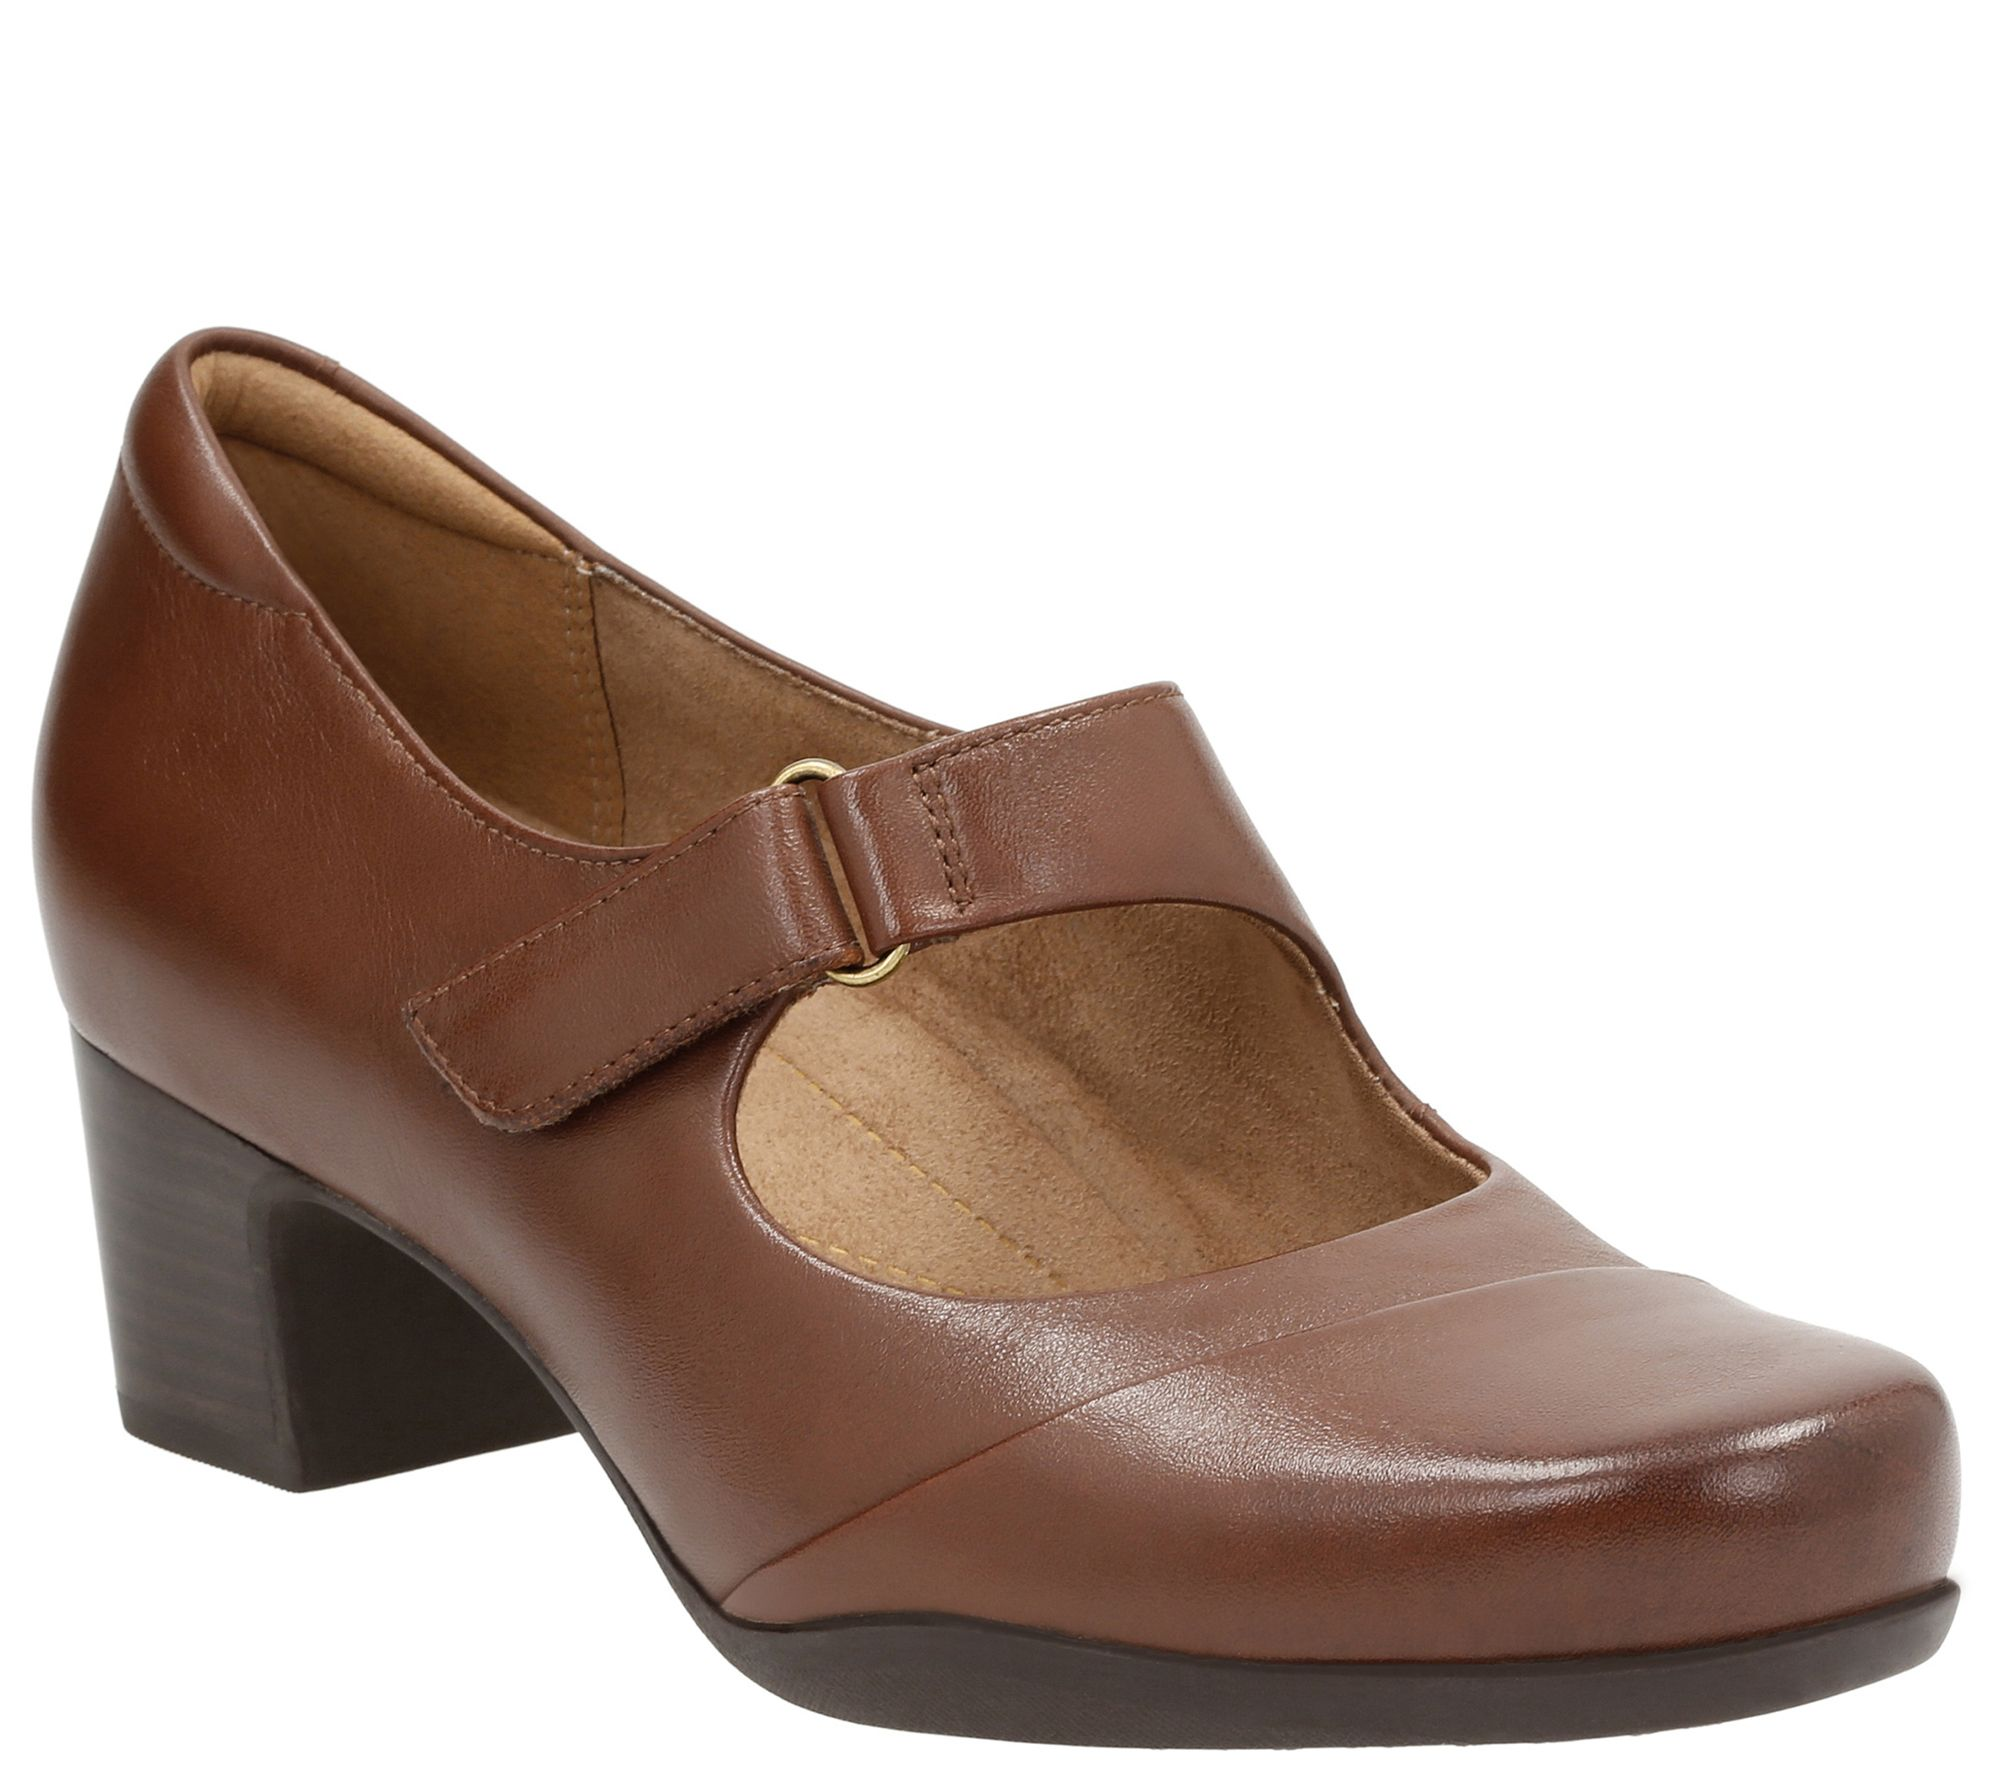 Mary Janes - Women's Mary Janes Shoes — QVC.com